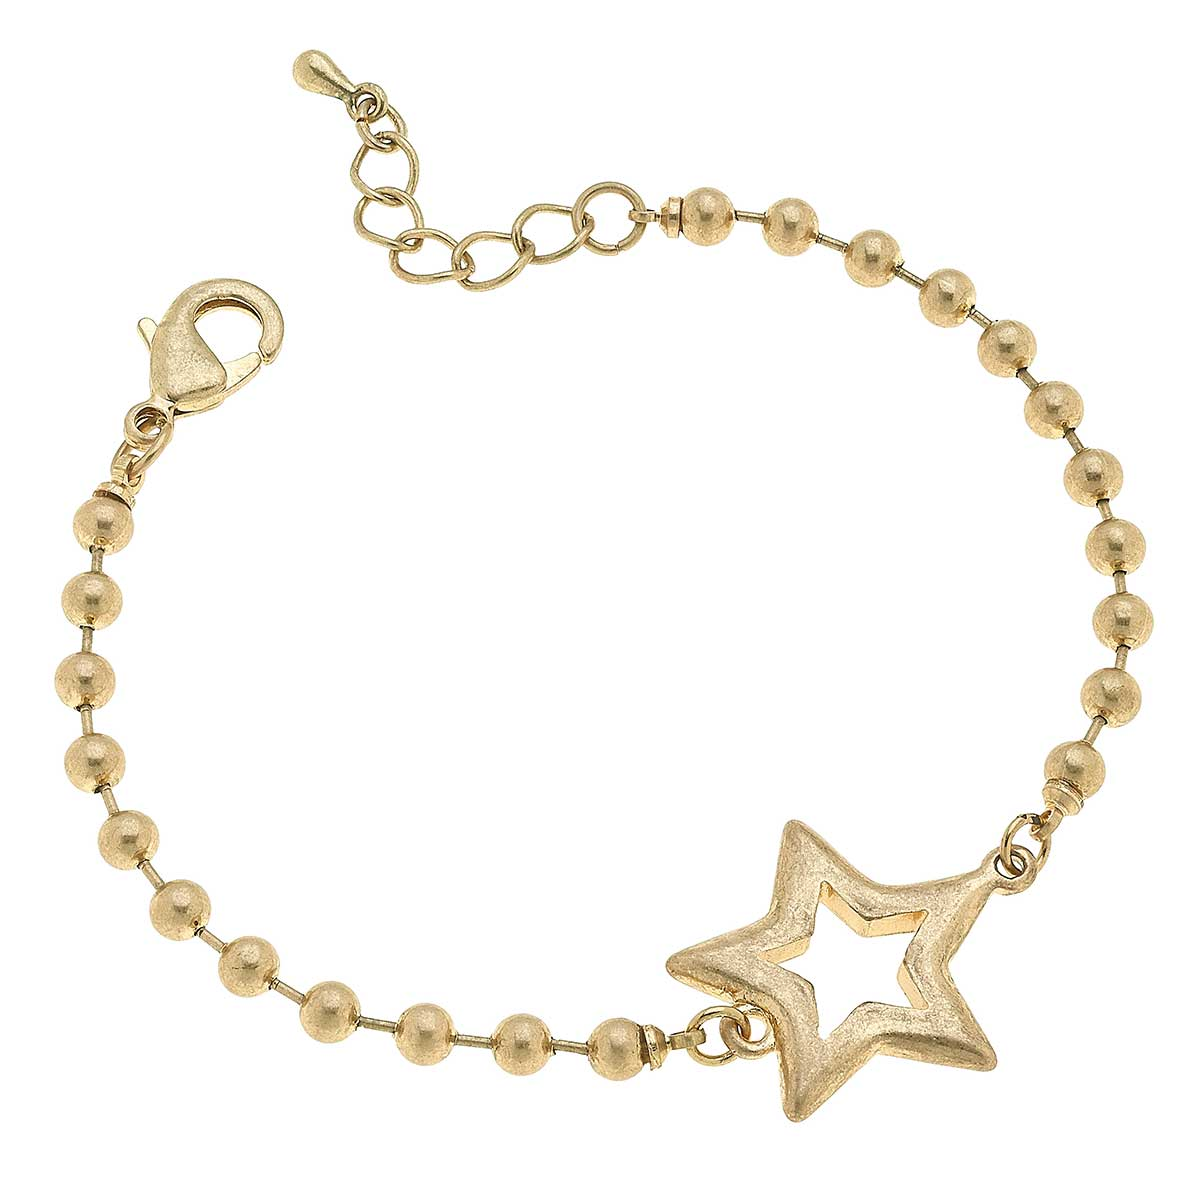 Grace Star Ball Chain Bracelet in Worn Gold